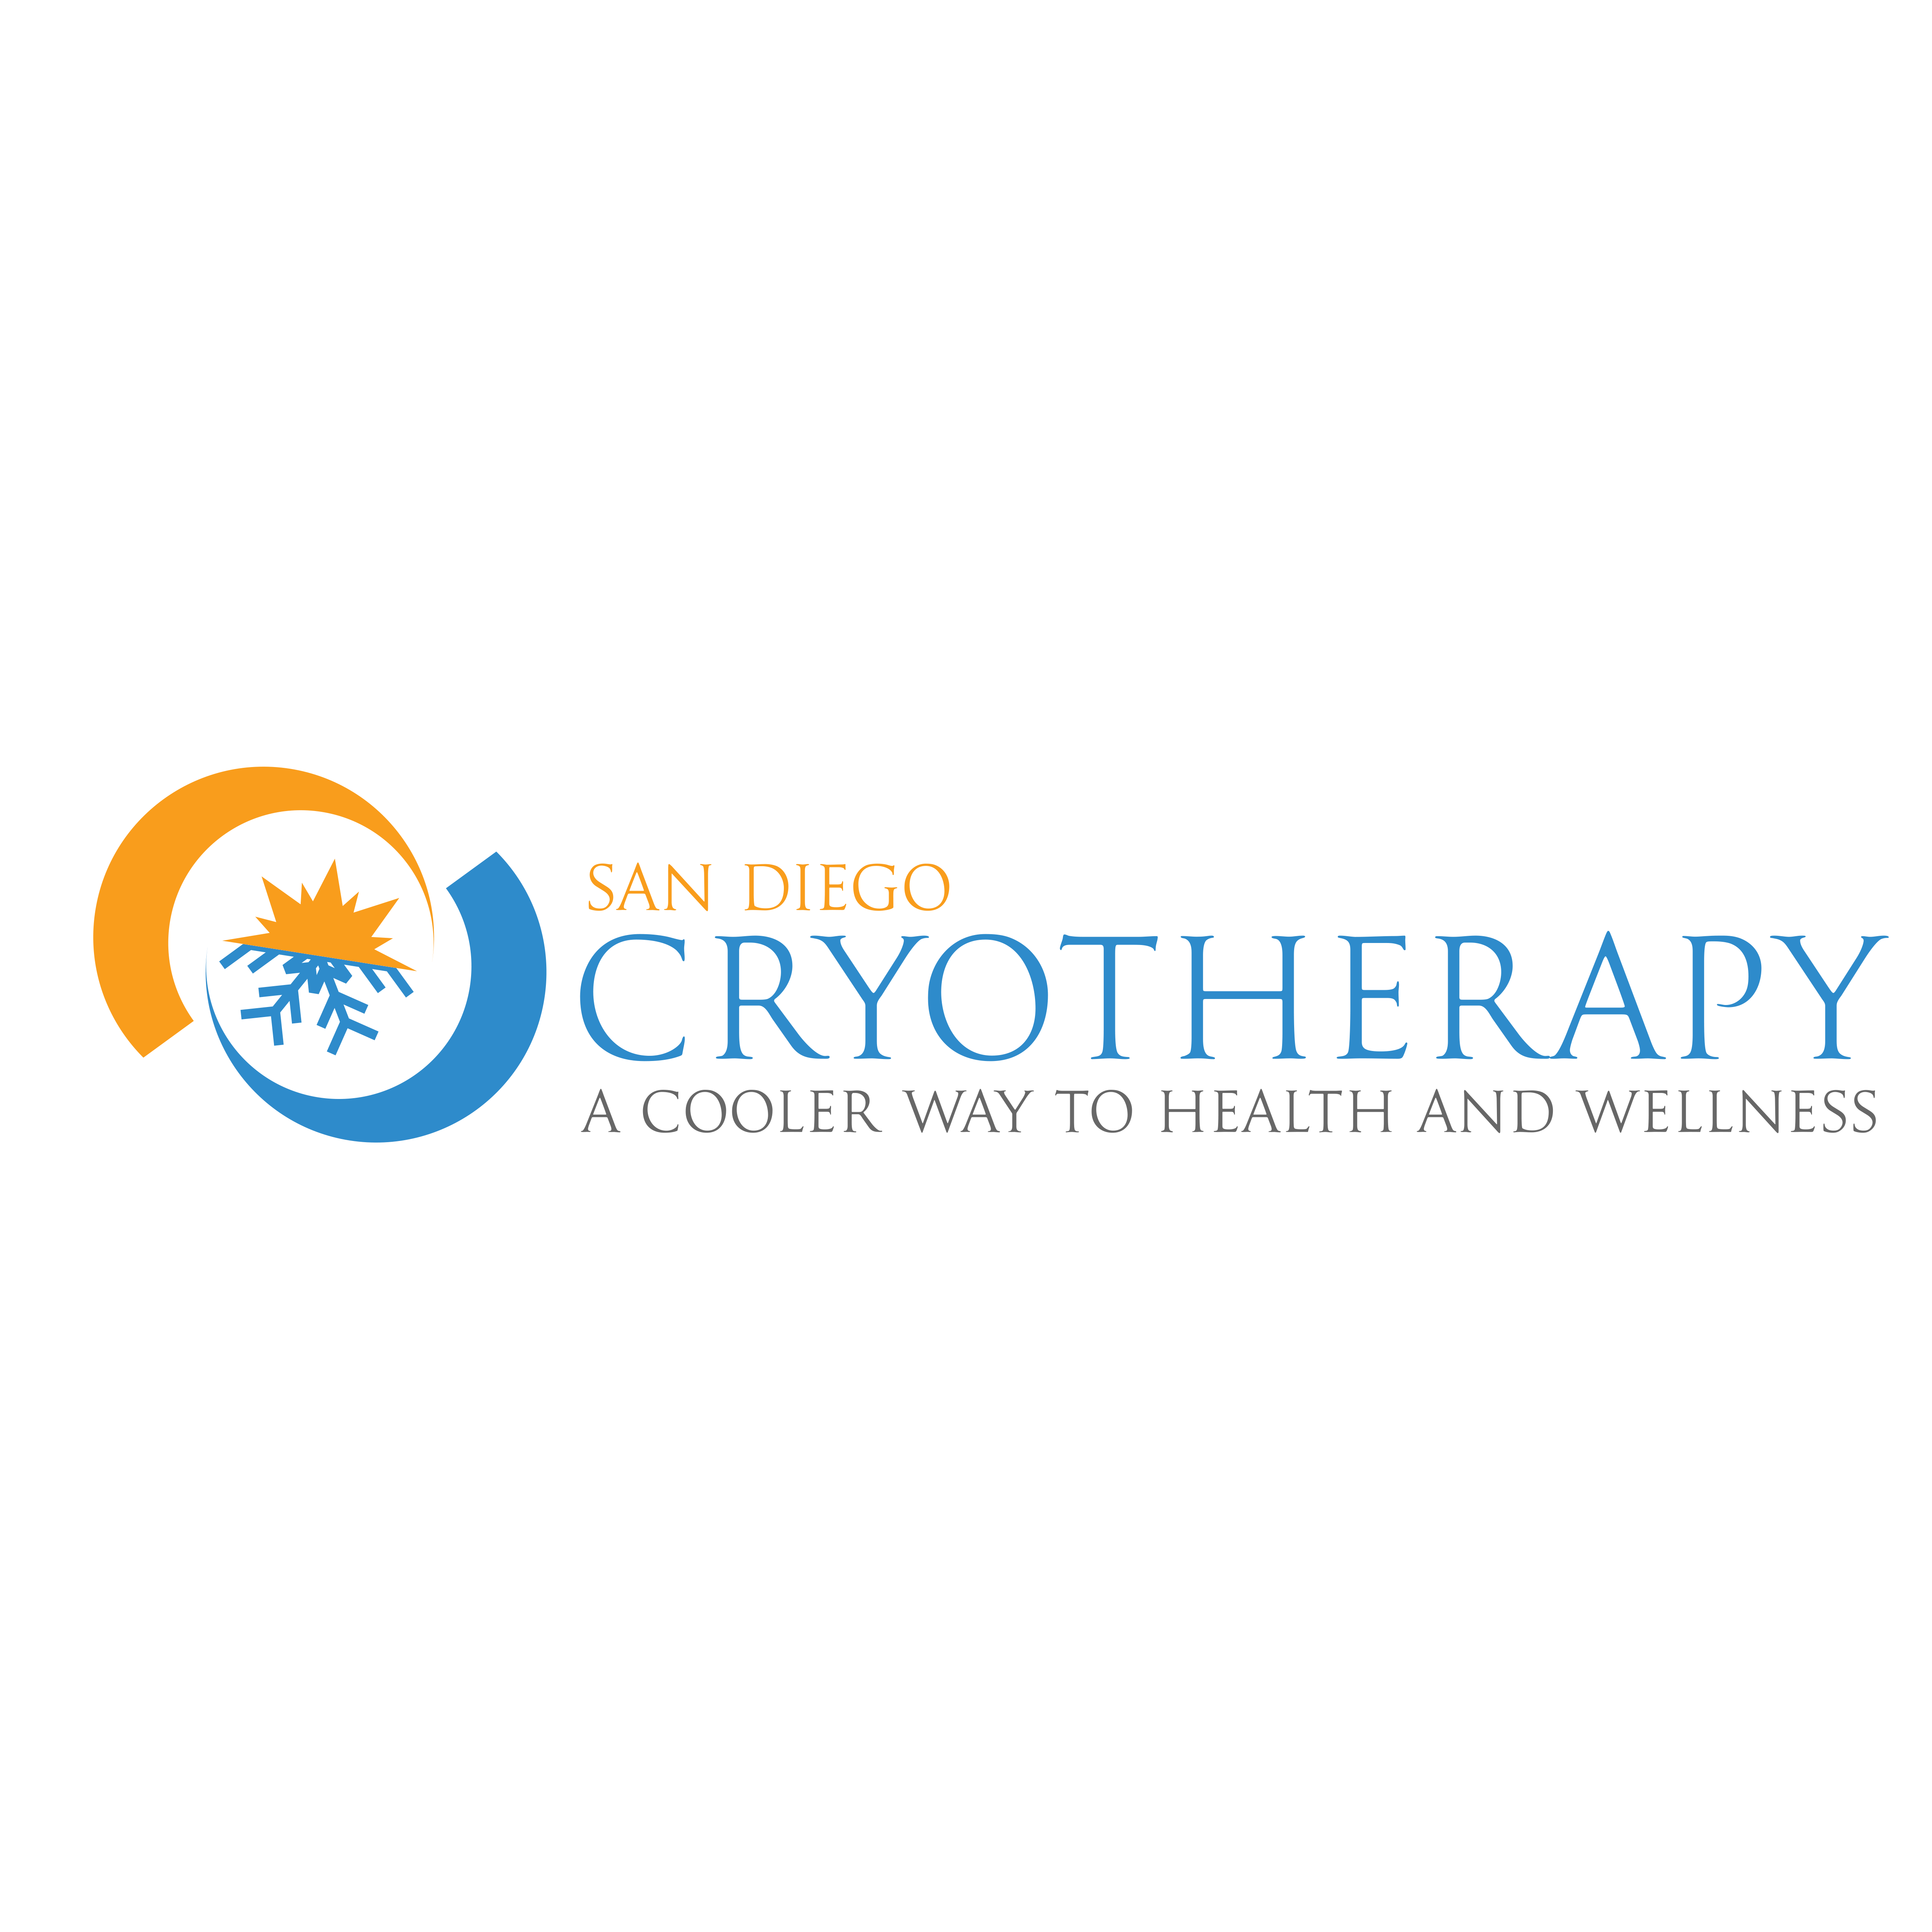 San Diego Cryotherapy